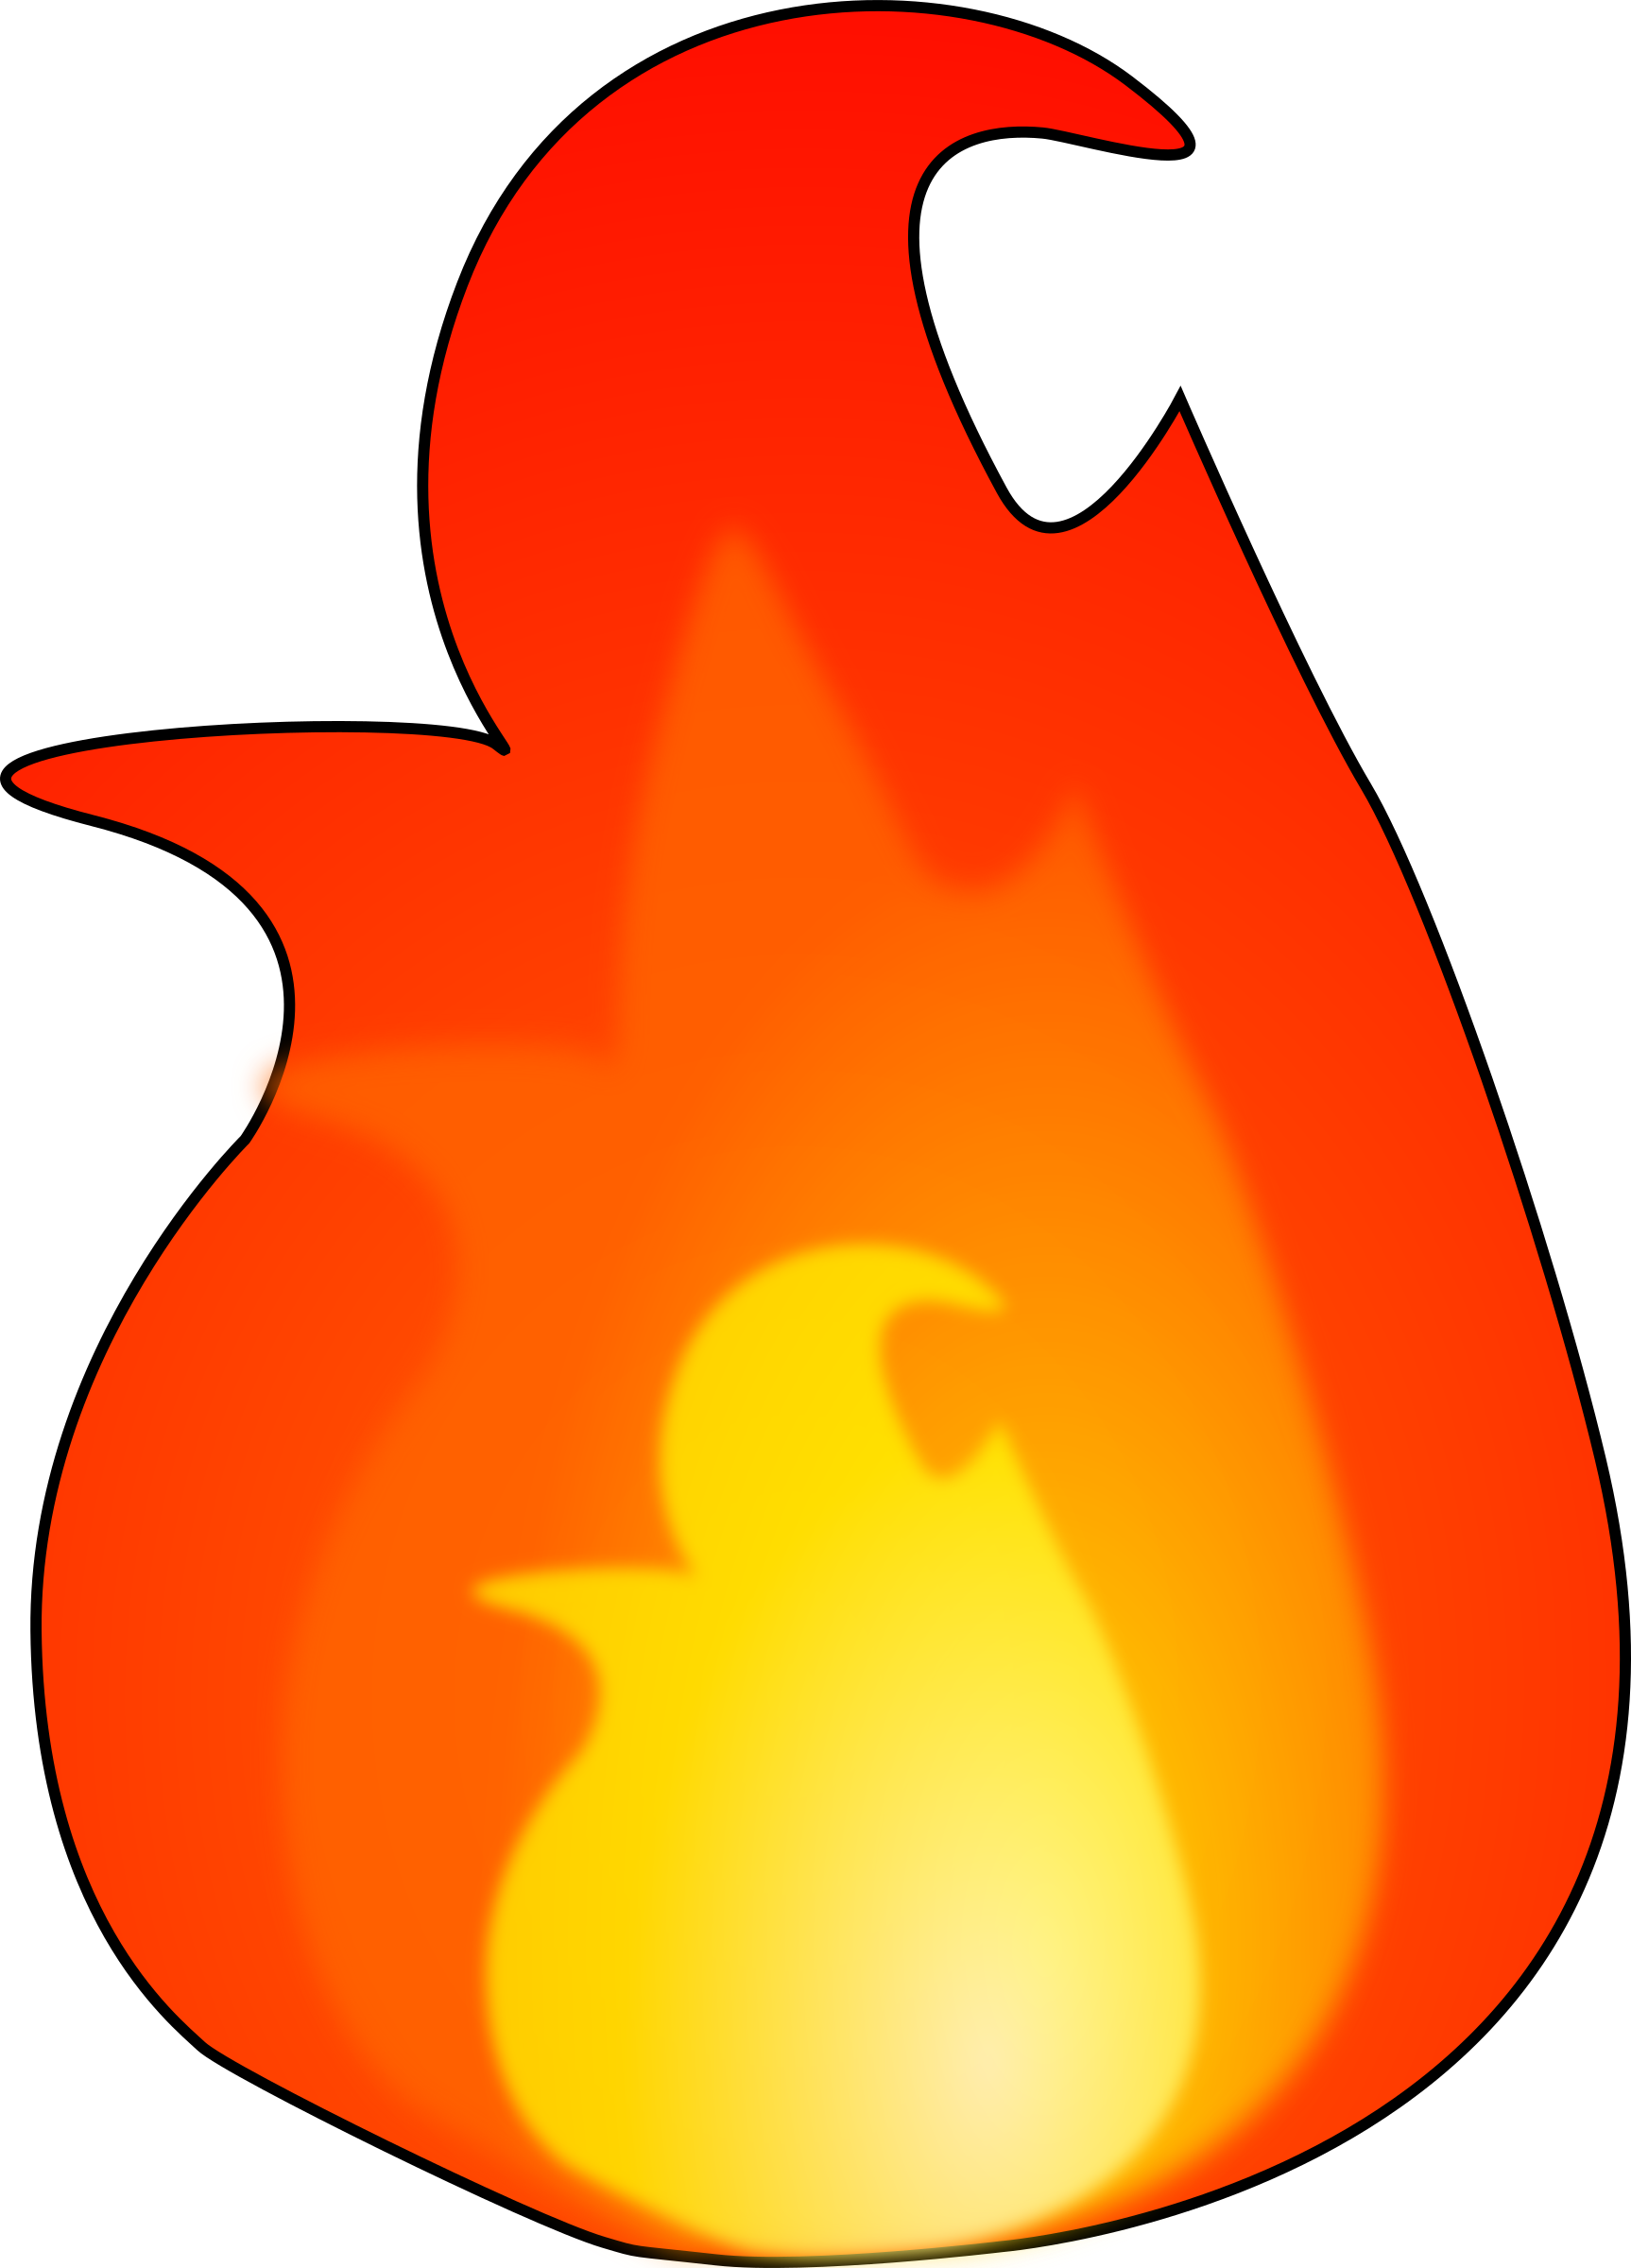 Clipart flames pdf. Another fire flame big